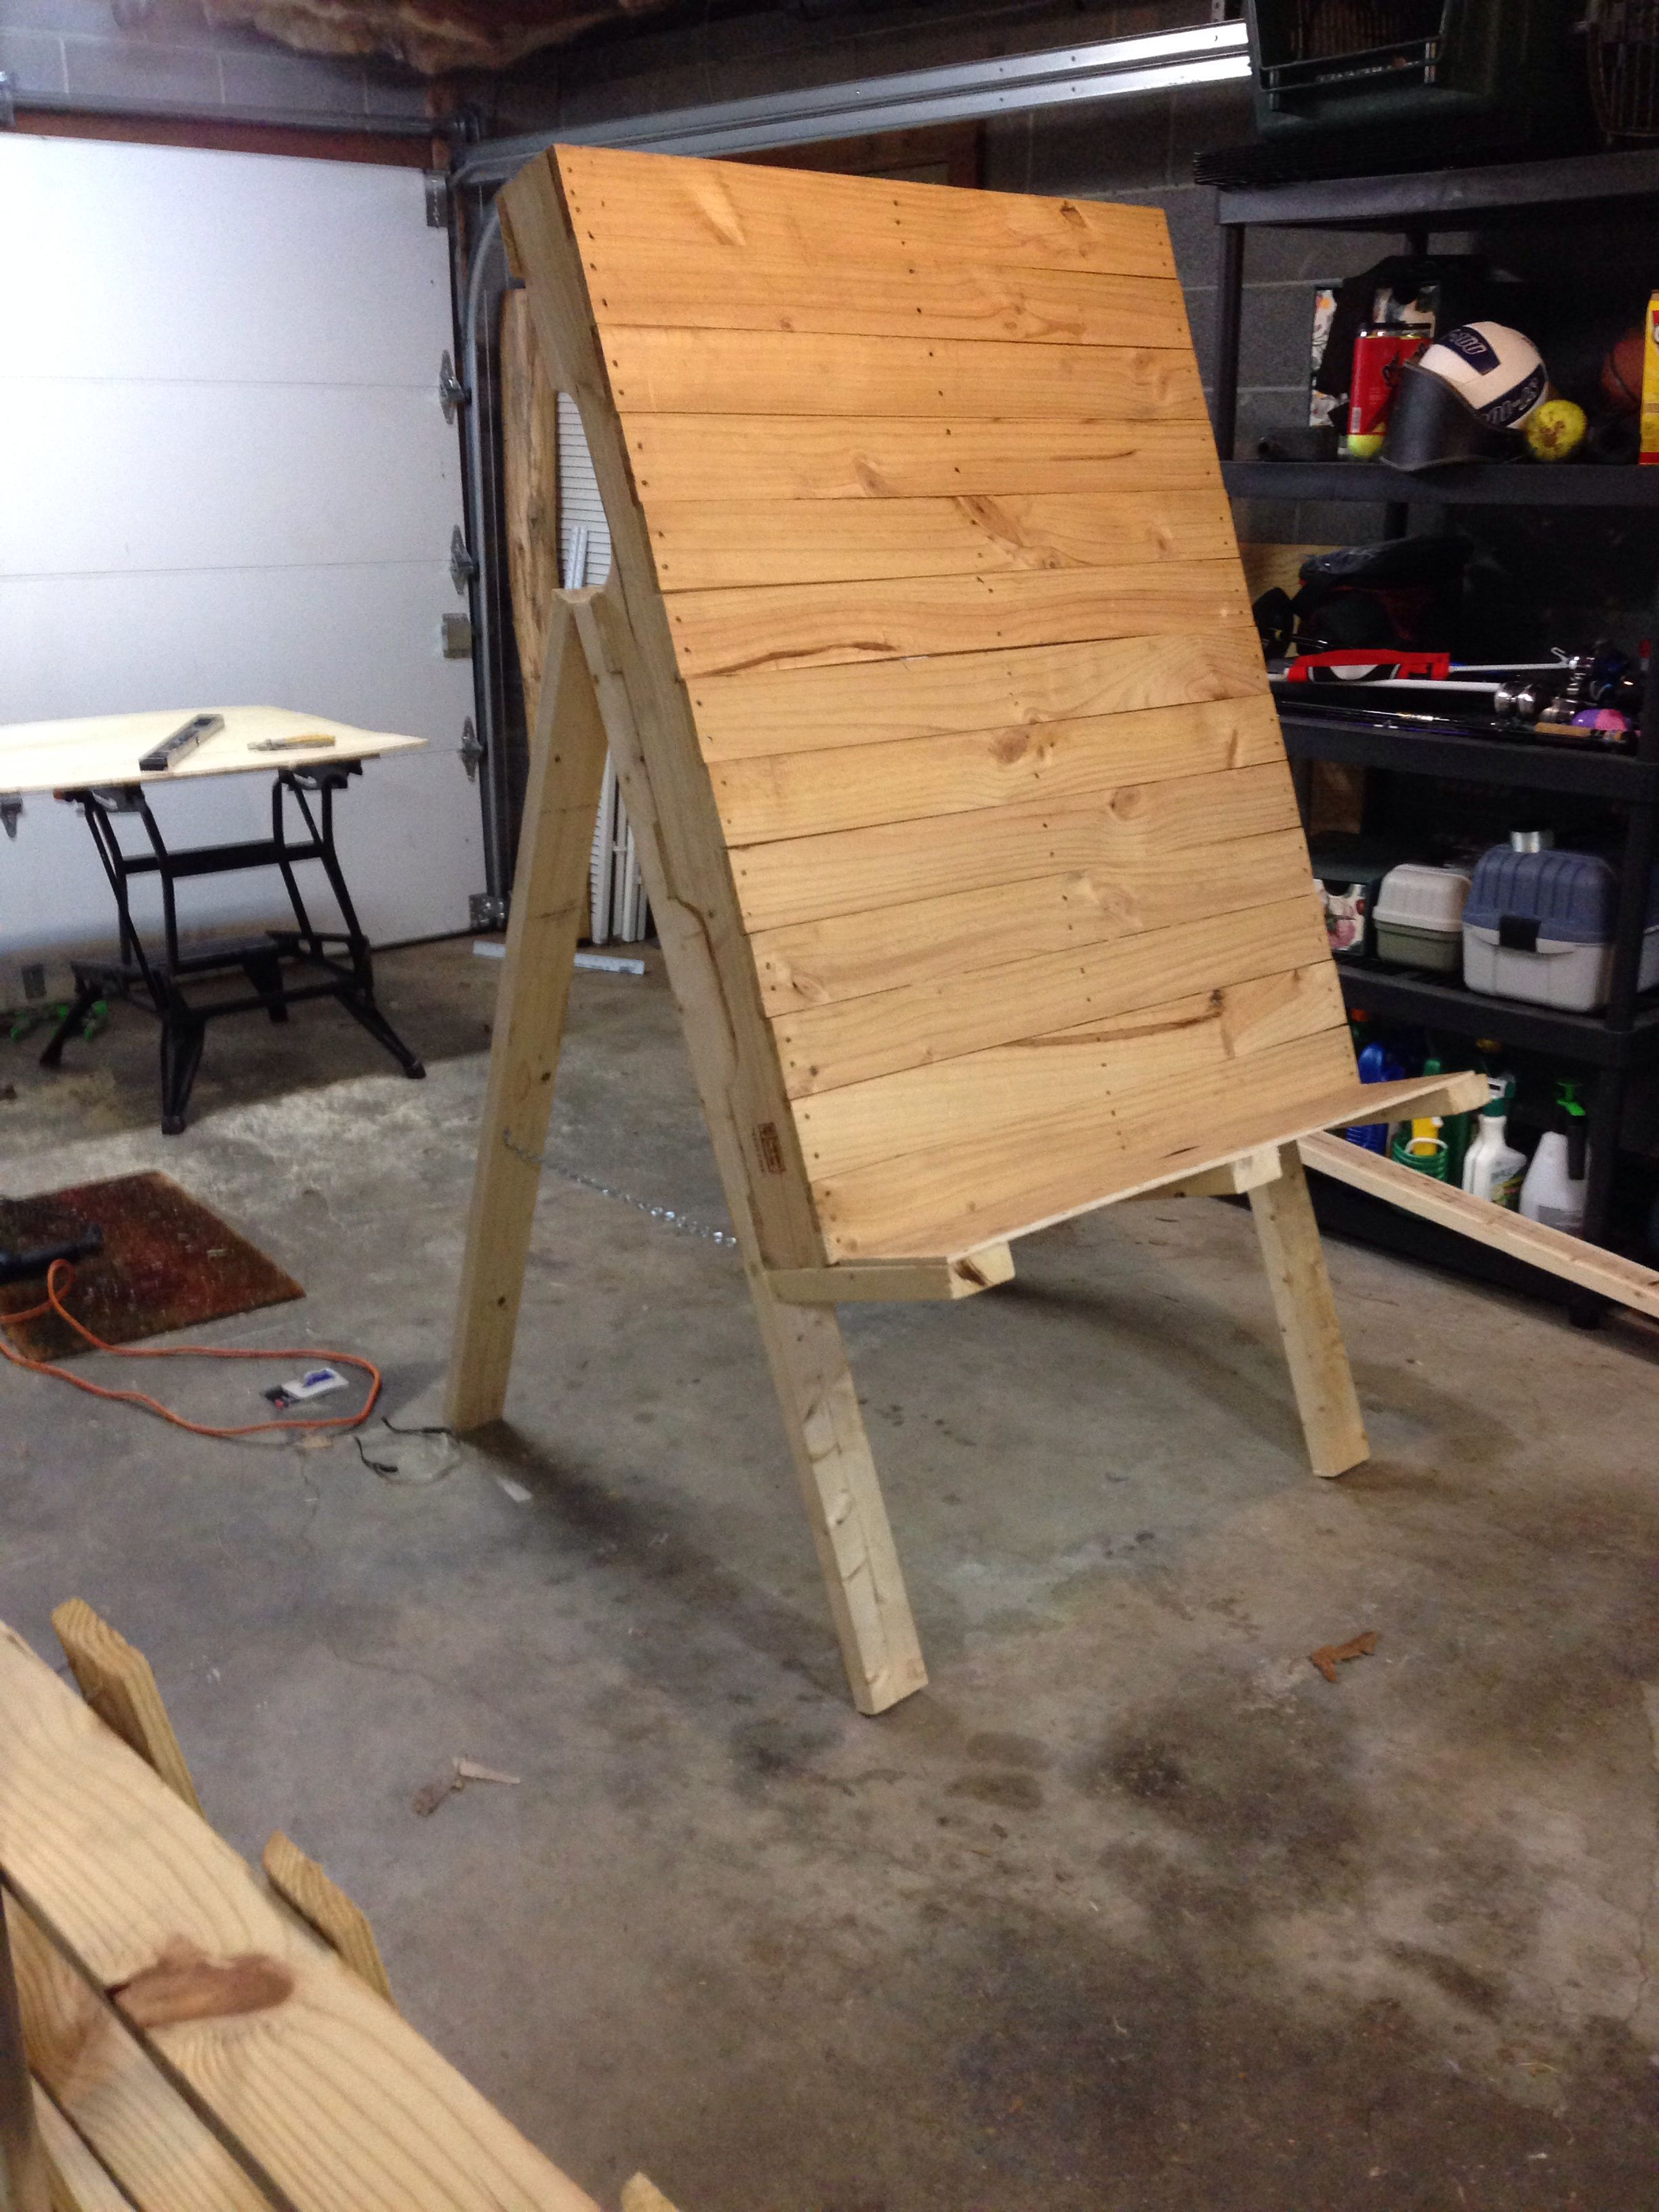 Backboard For Archery Target Will Hold Pinestraw Made From A Pallet Found Lumber Diy Archery Target Archery Range Archery Target